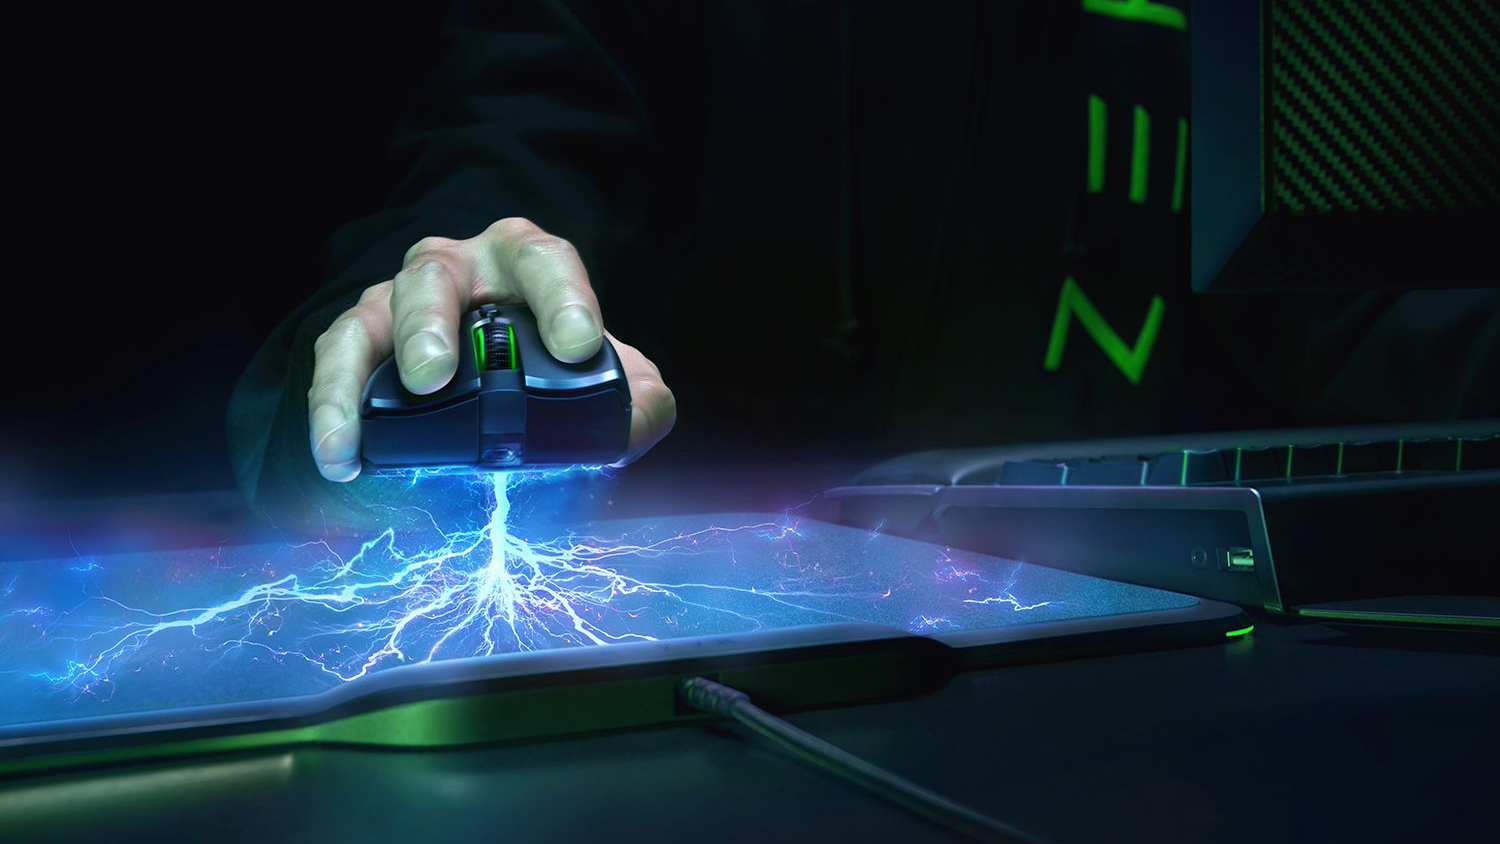 Razer Mamba + Firefly Hyperflux review: a completely superfluous